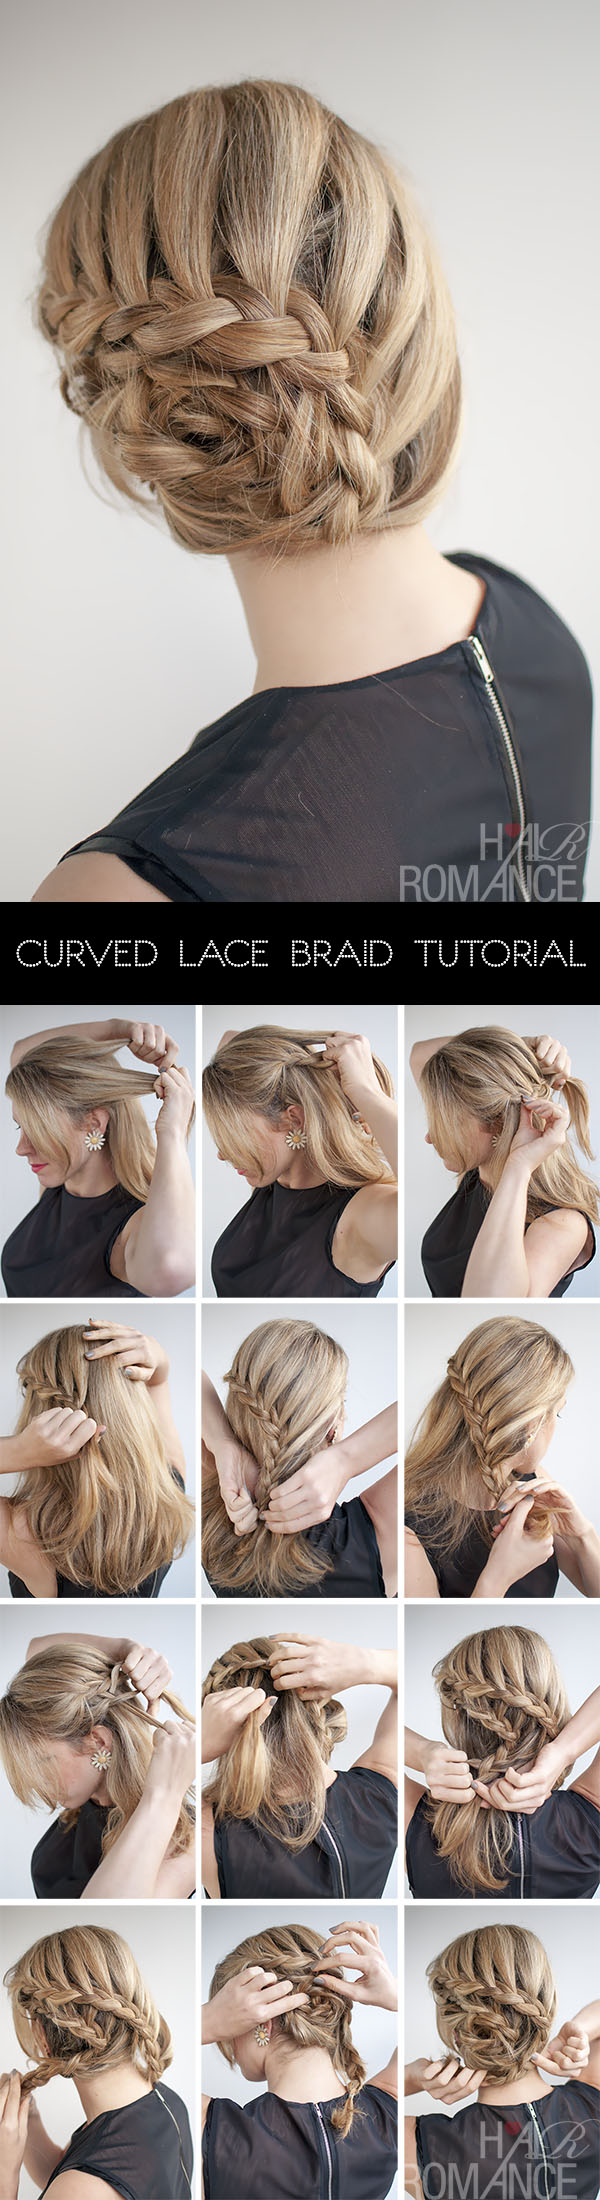 Curved lace braid hairstyle tutorial inspired by Nicole Kidman at Cannes | Hair Romance